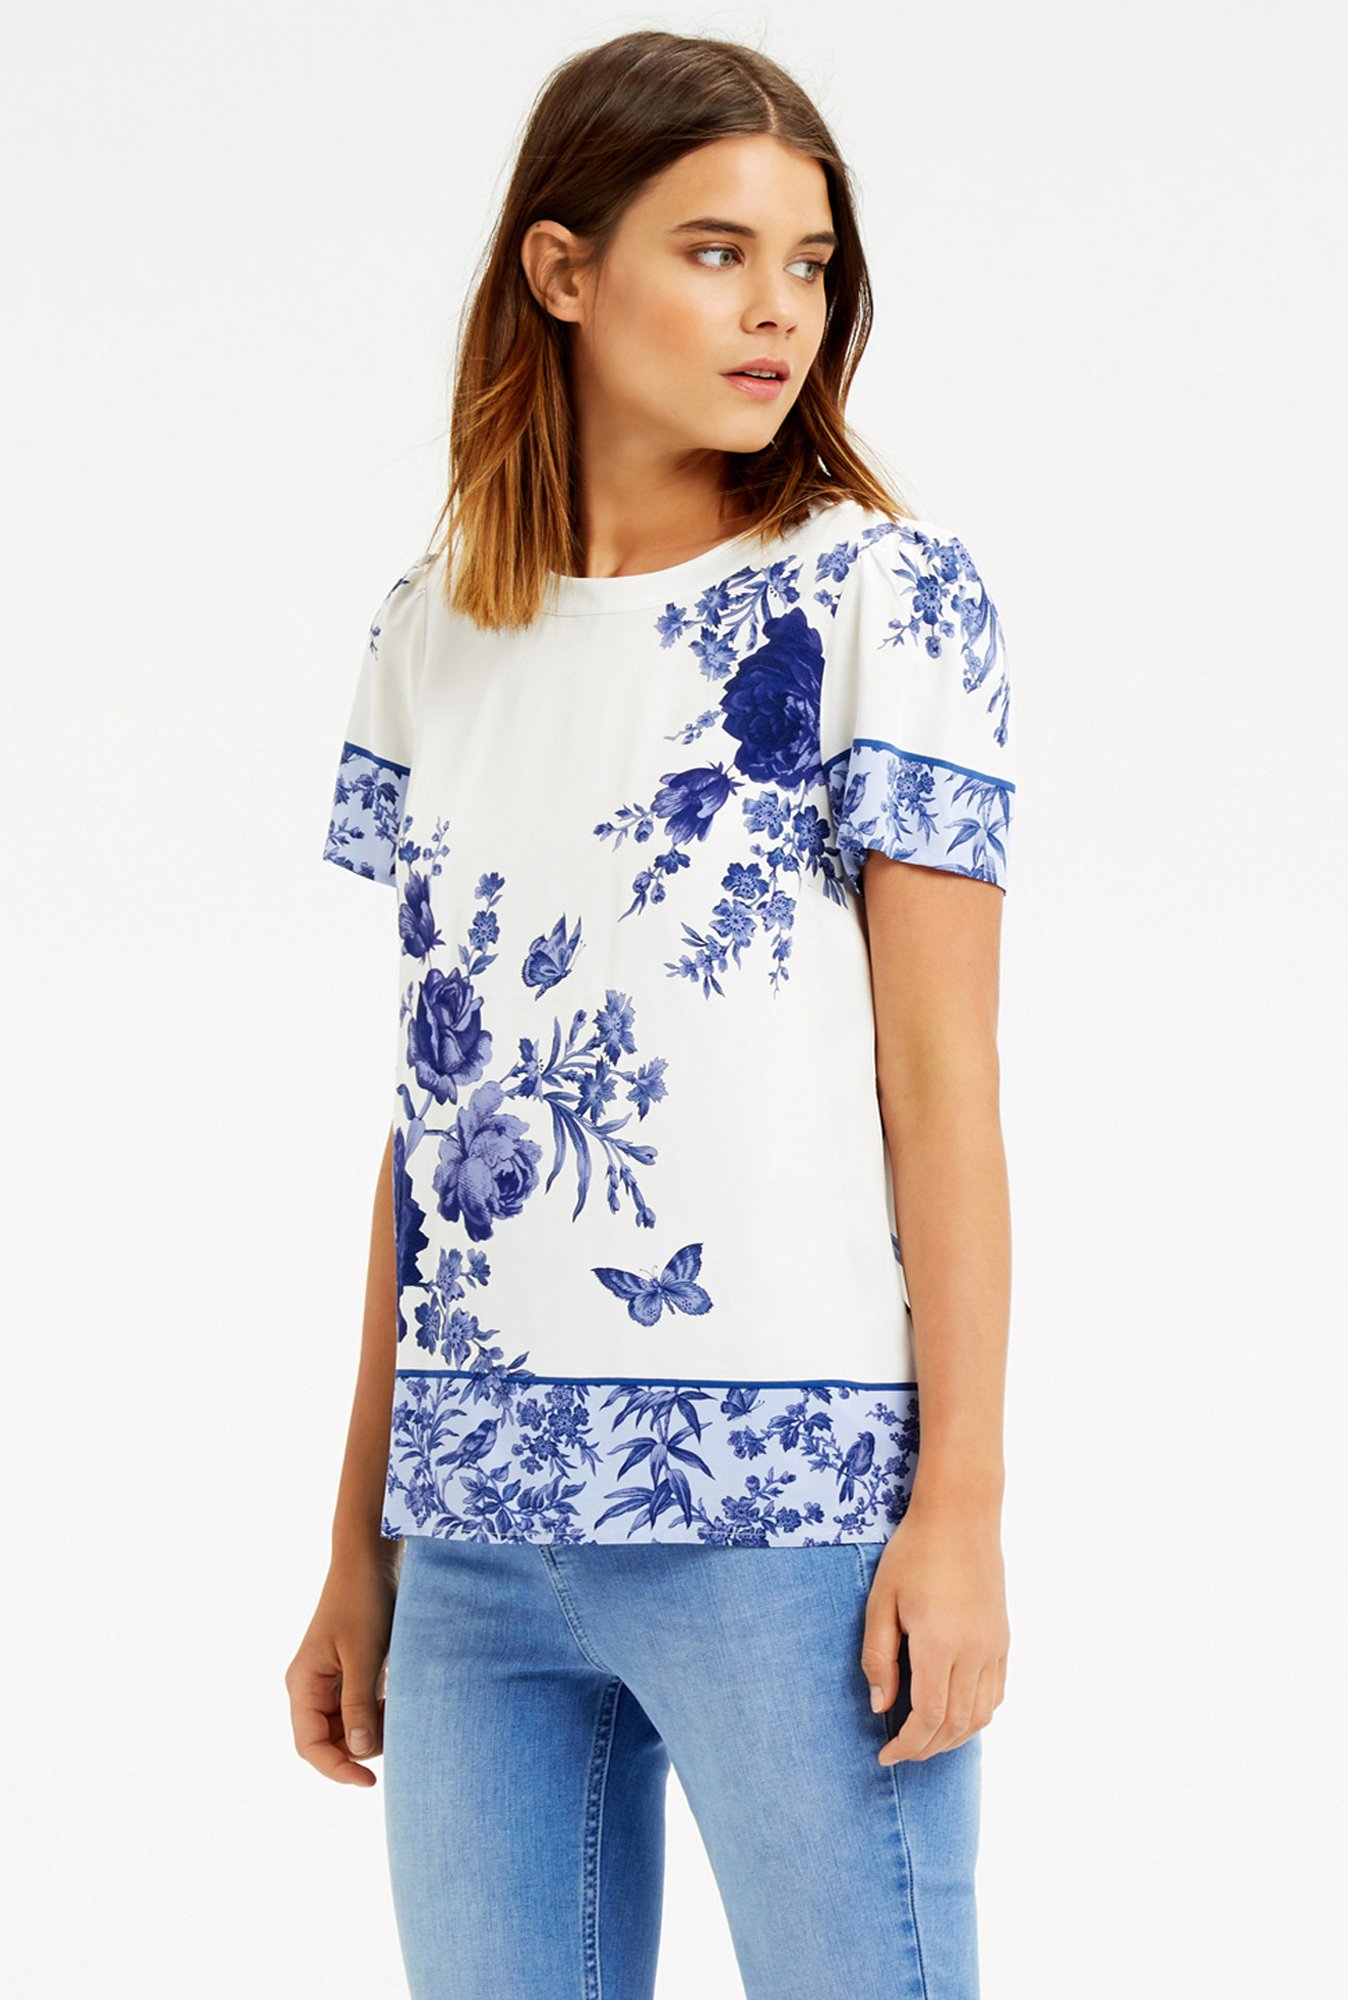 Oasis White & Blue Floral Print Top